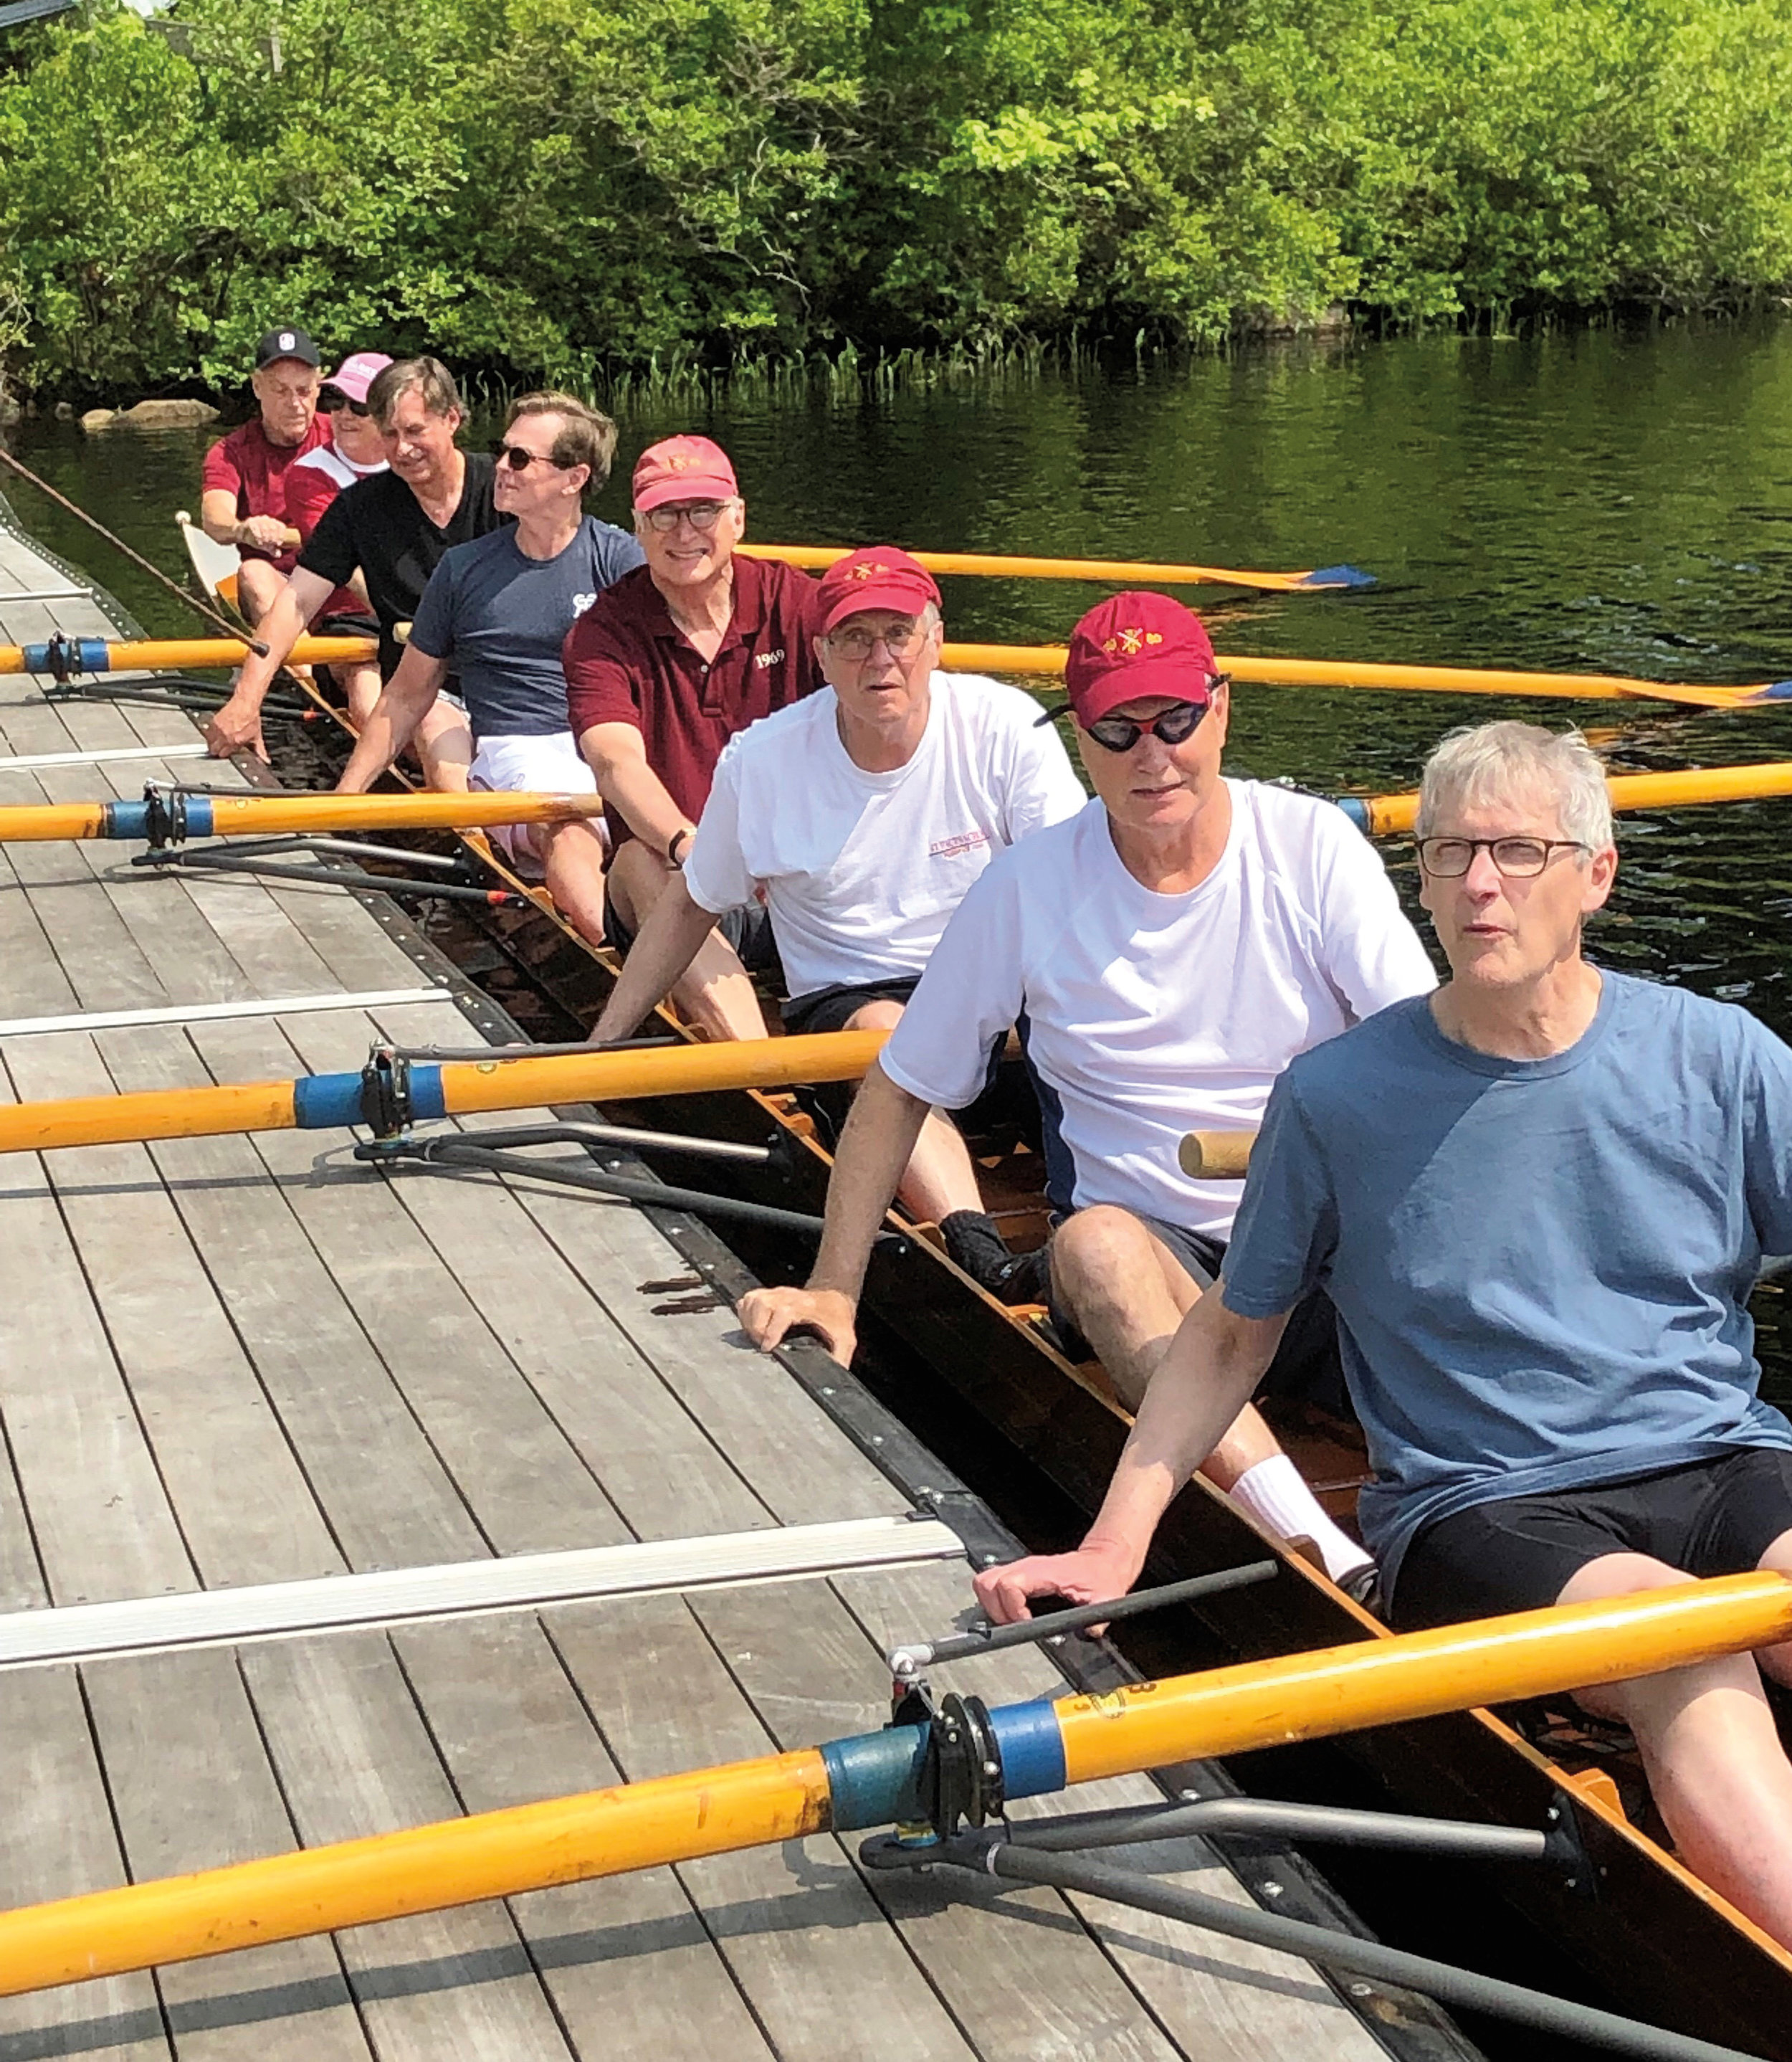 From the 2019 Anniversary Weekend Boat Races: Hugh Taylor '69 (stroke) – doctor in attendance, Charlie Hickox '69 (7), Rev. Charles Bradshaw '69 (6) – spiritual guide, Pete Flynn '69 (5) – legal representative, Charlie Scribner '69 (4) – literary agent, George Birchard '69 (3) – instigator, Terry Hunt '69 (2) – therapist, and Greg Vail '69 (bow).